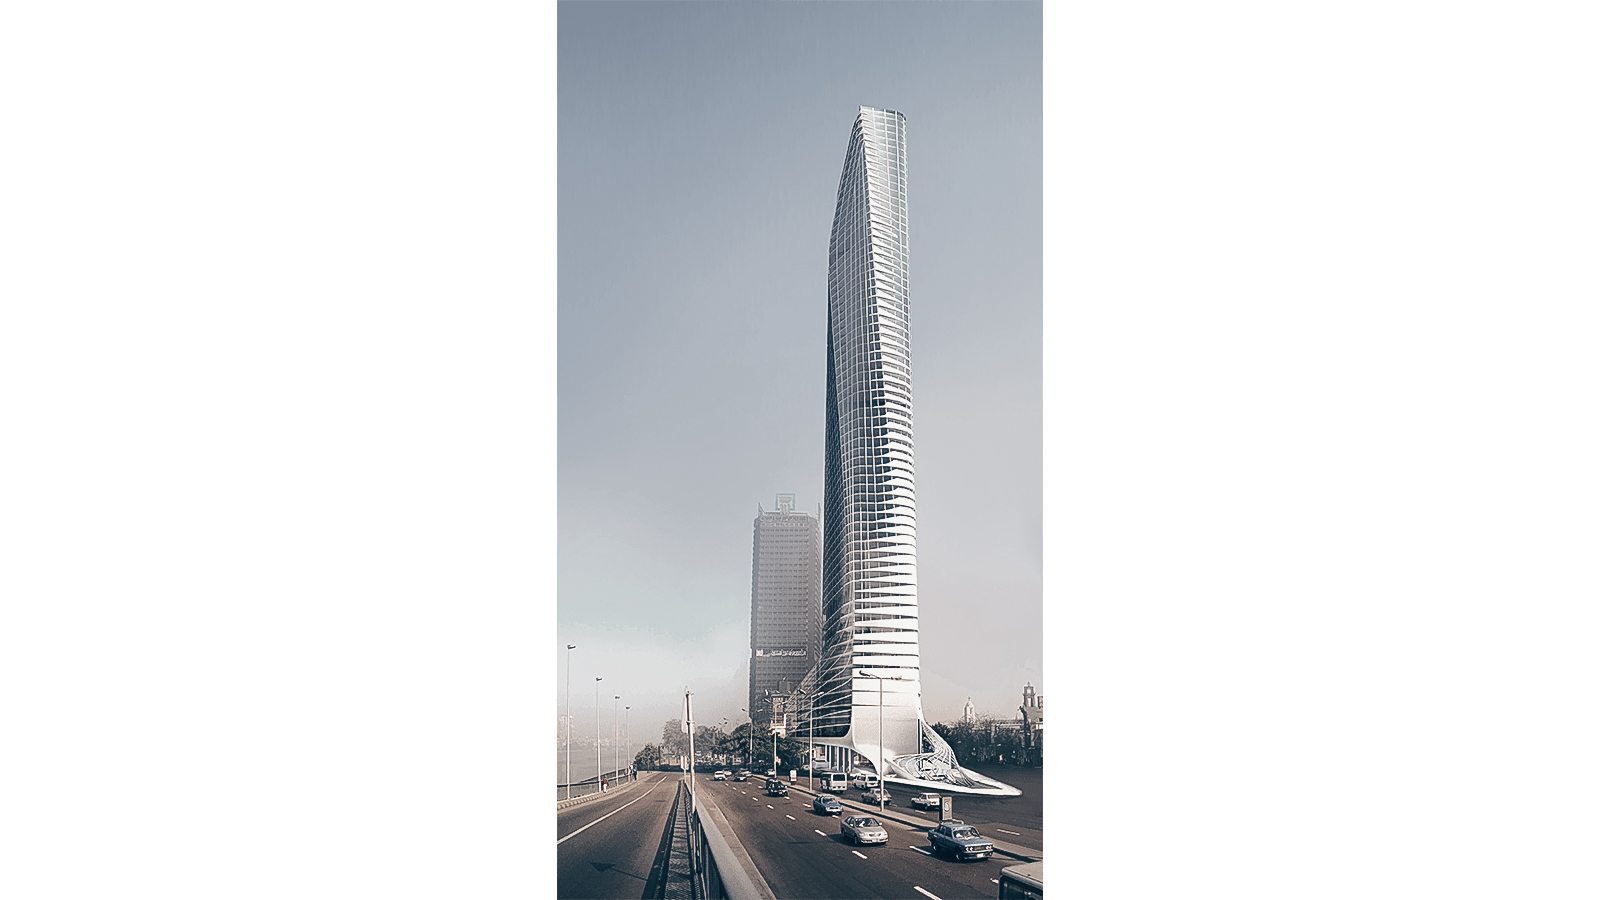 Nile Tower